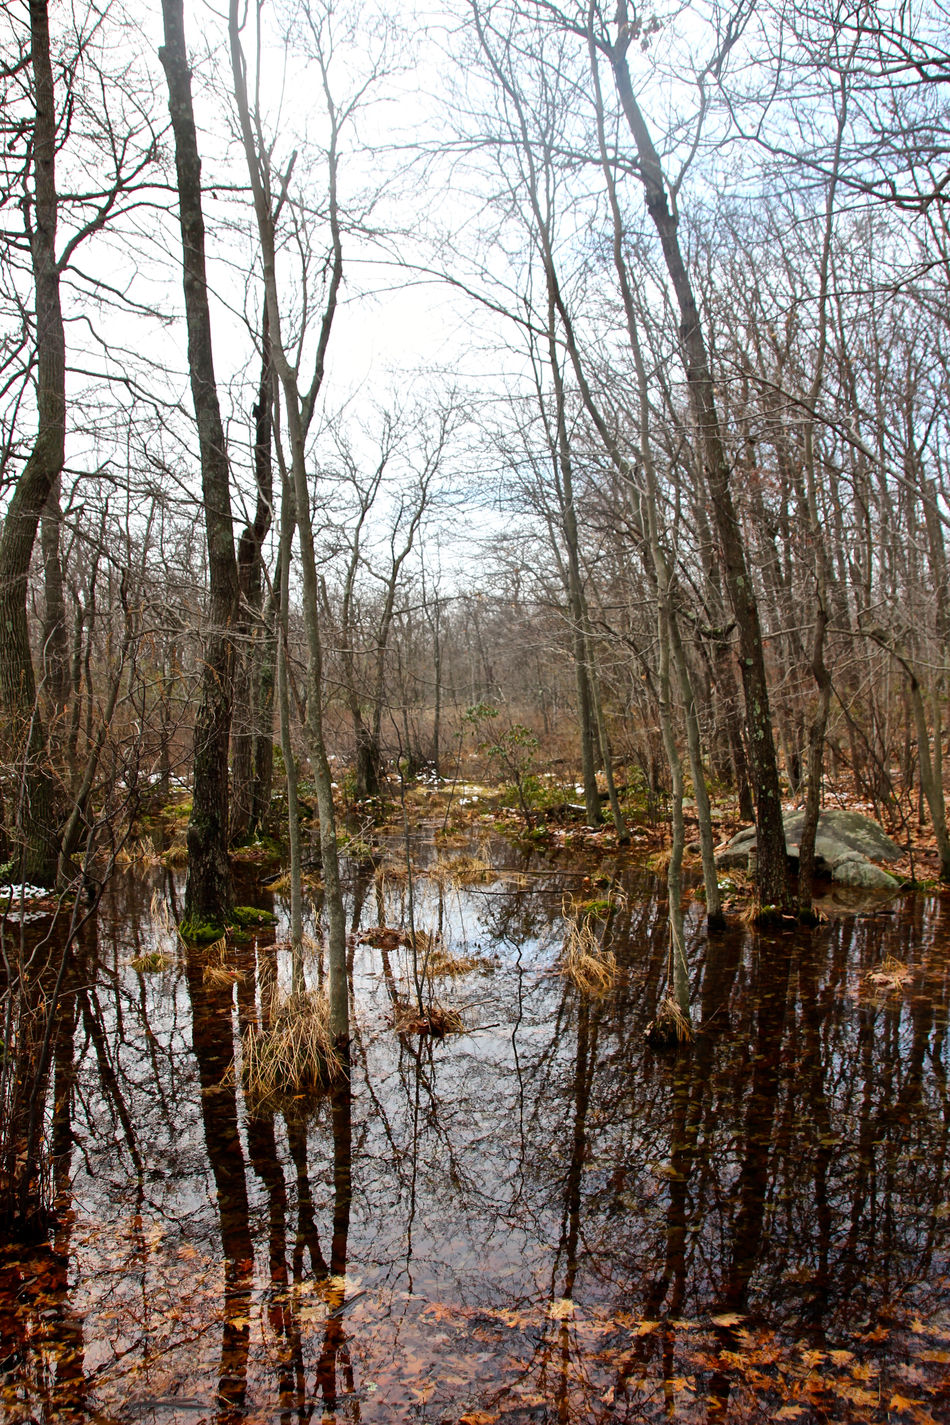 Beauty In Nature Cold Spring Day Forest Growth Hiking Nature New York State No People Outdoors Reflection Reflection Lake Scenics Tranquility Tree USA Water Wetland